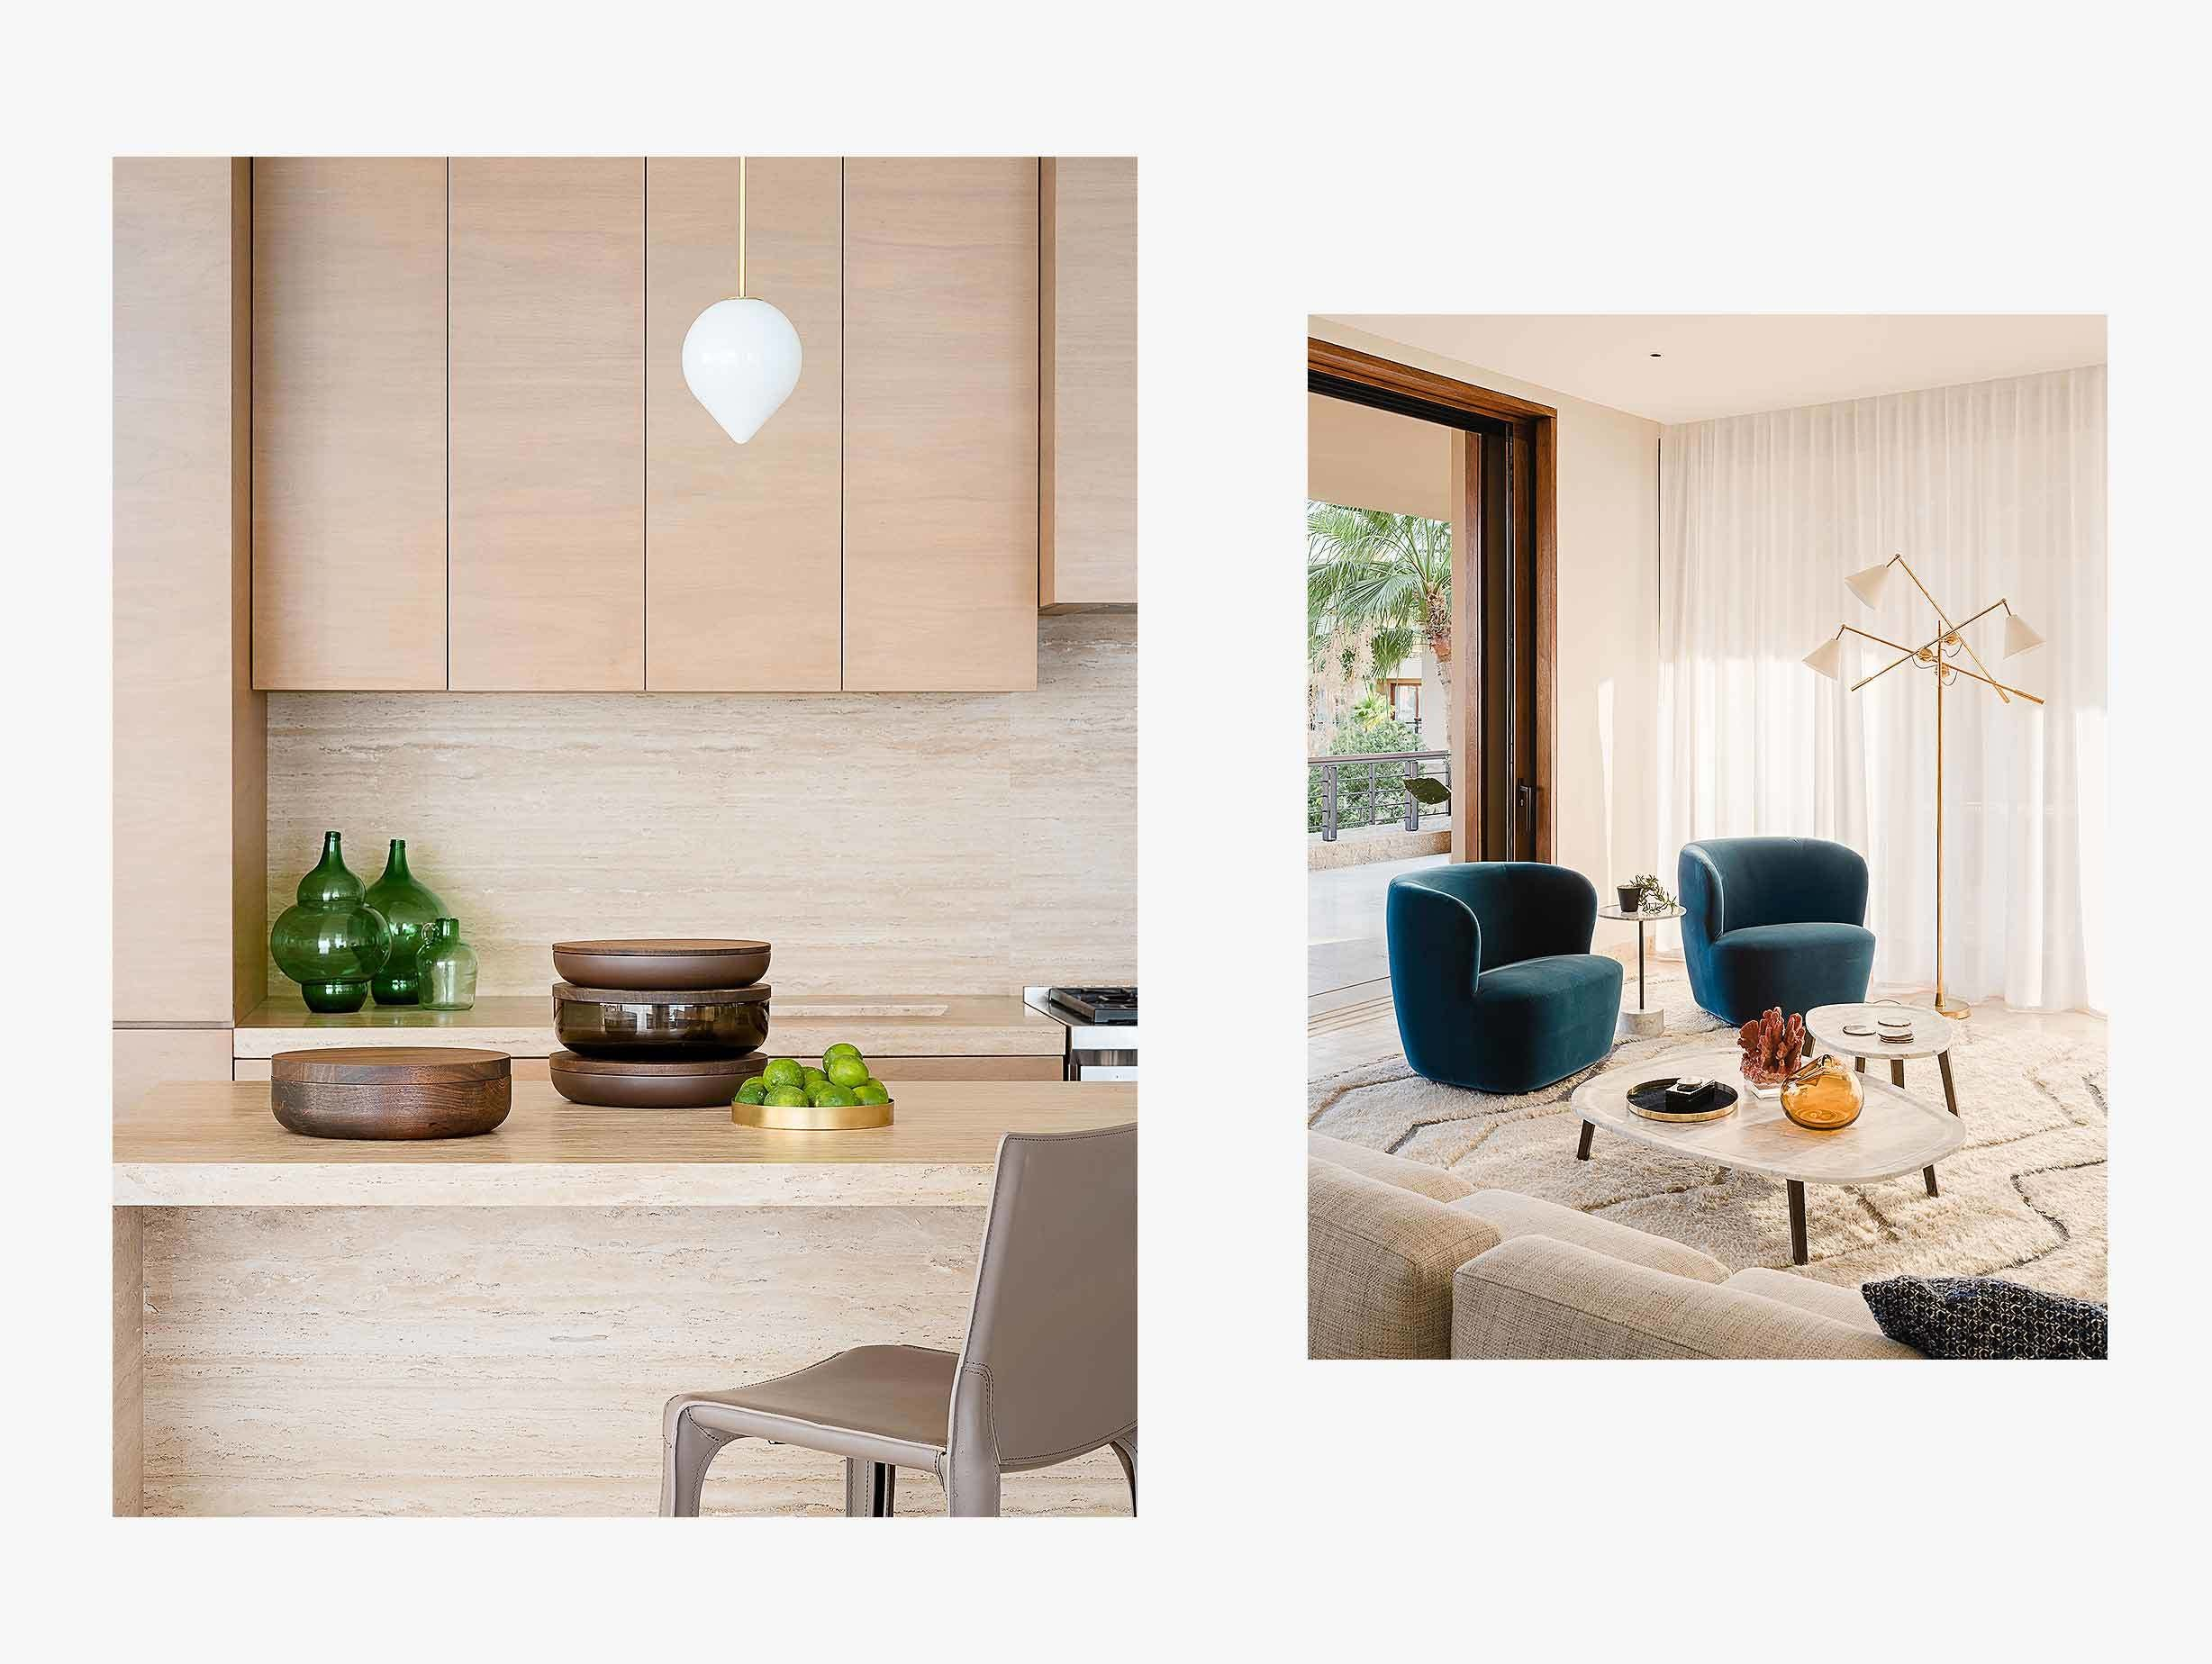 Kallos Turin Cabo Project 3 image